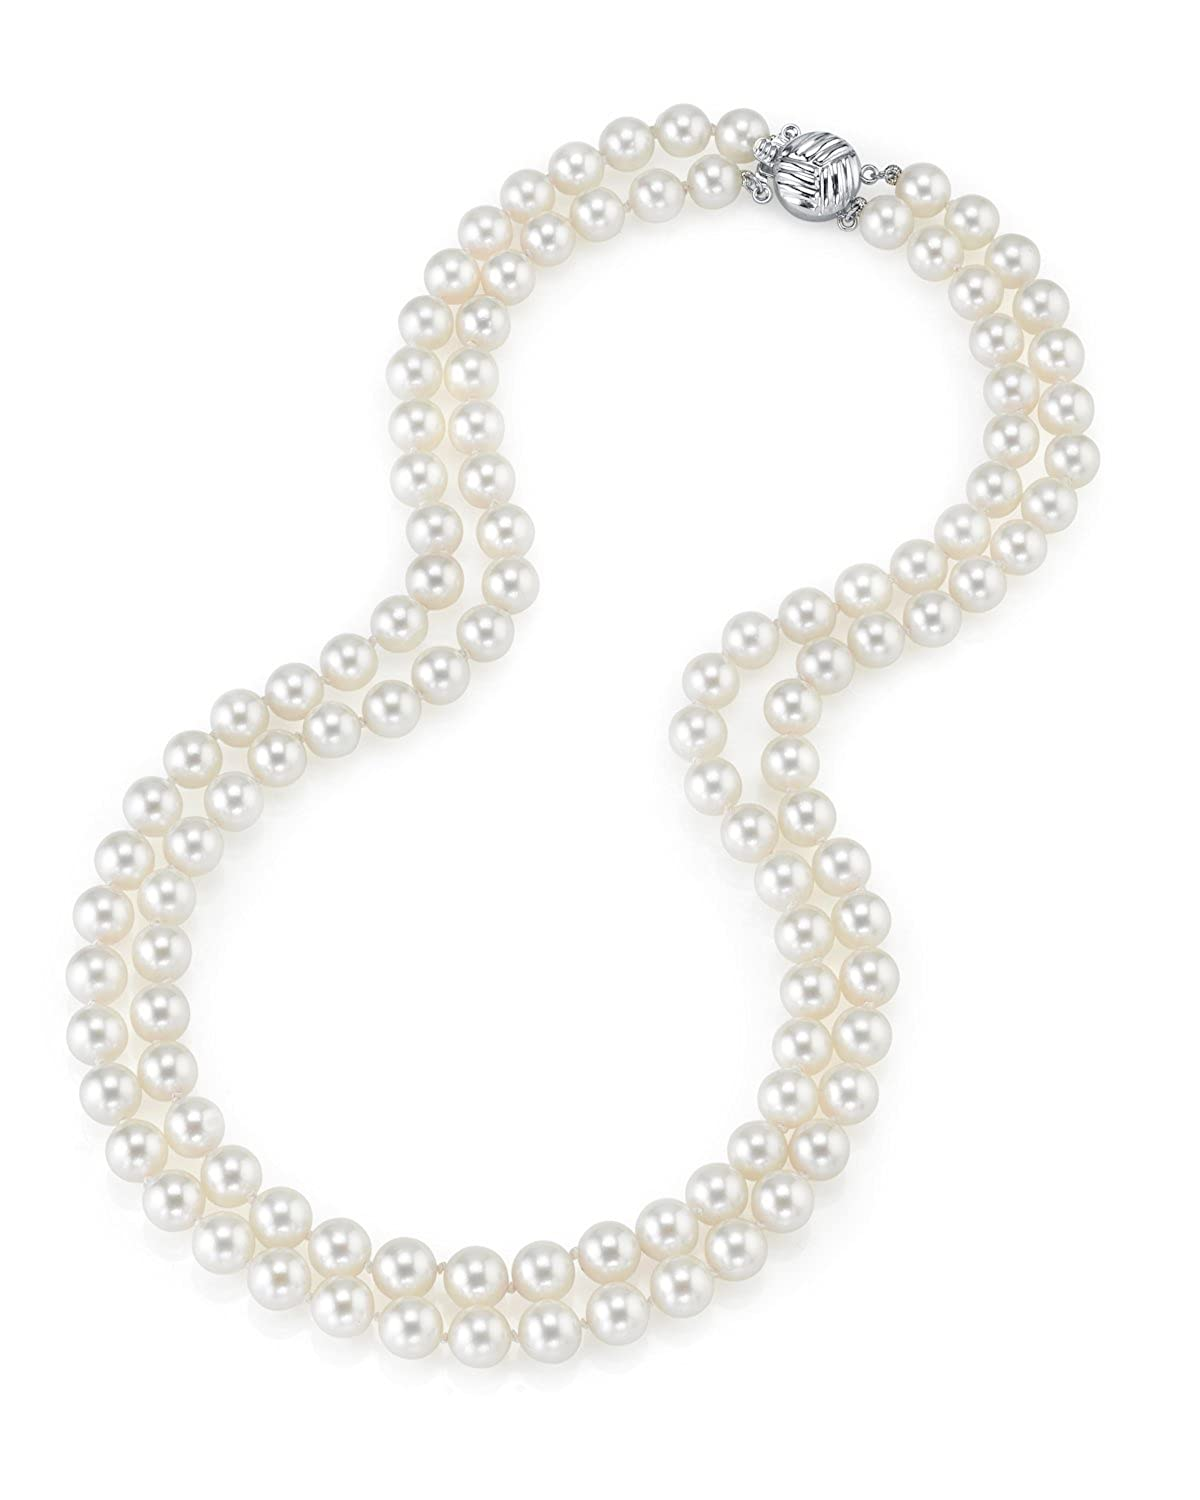 """14K Gold 7.0-7.5mm Japanese Akoya White Cultured Double Strand Pearl Necklace – AAA Quality, 17-18"""""""